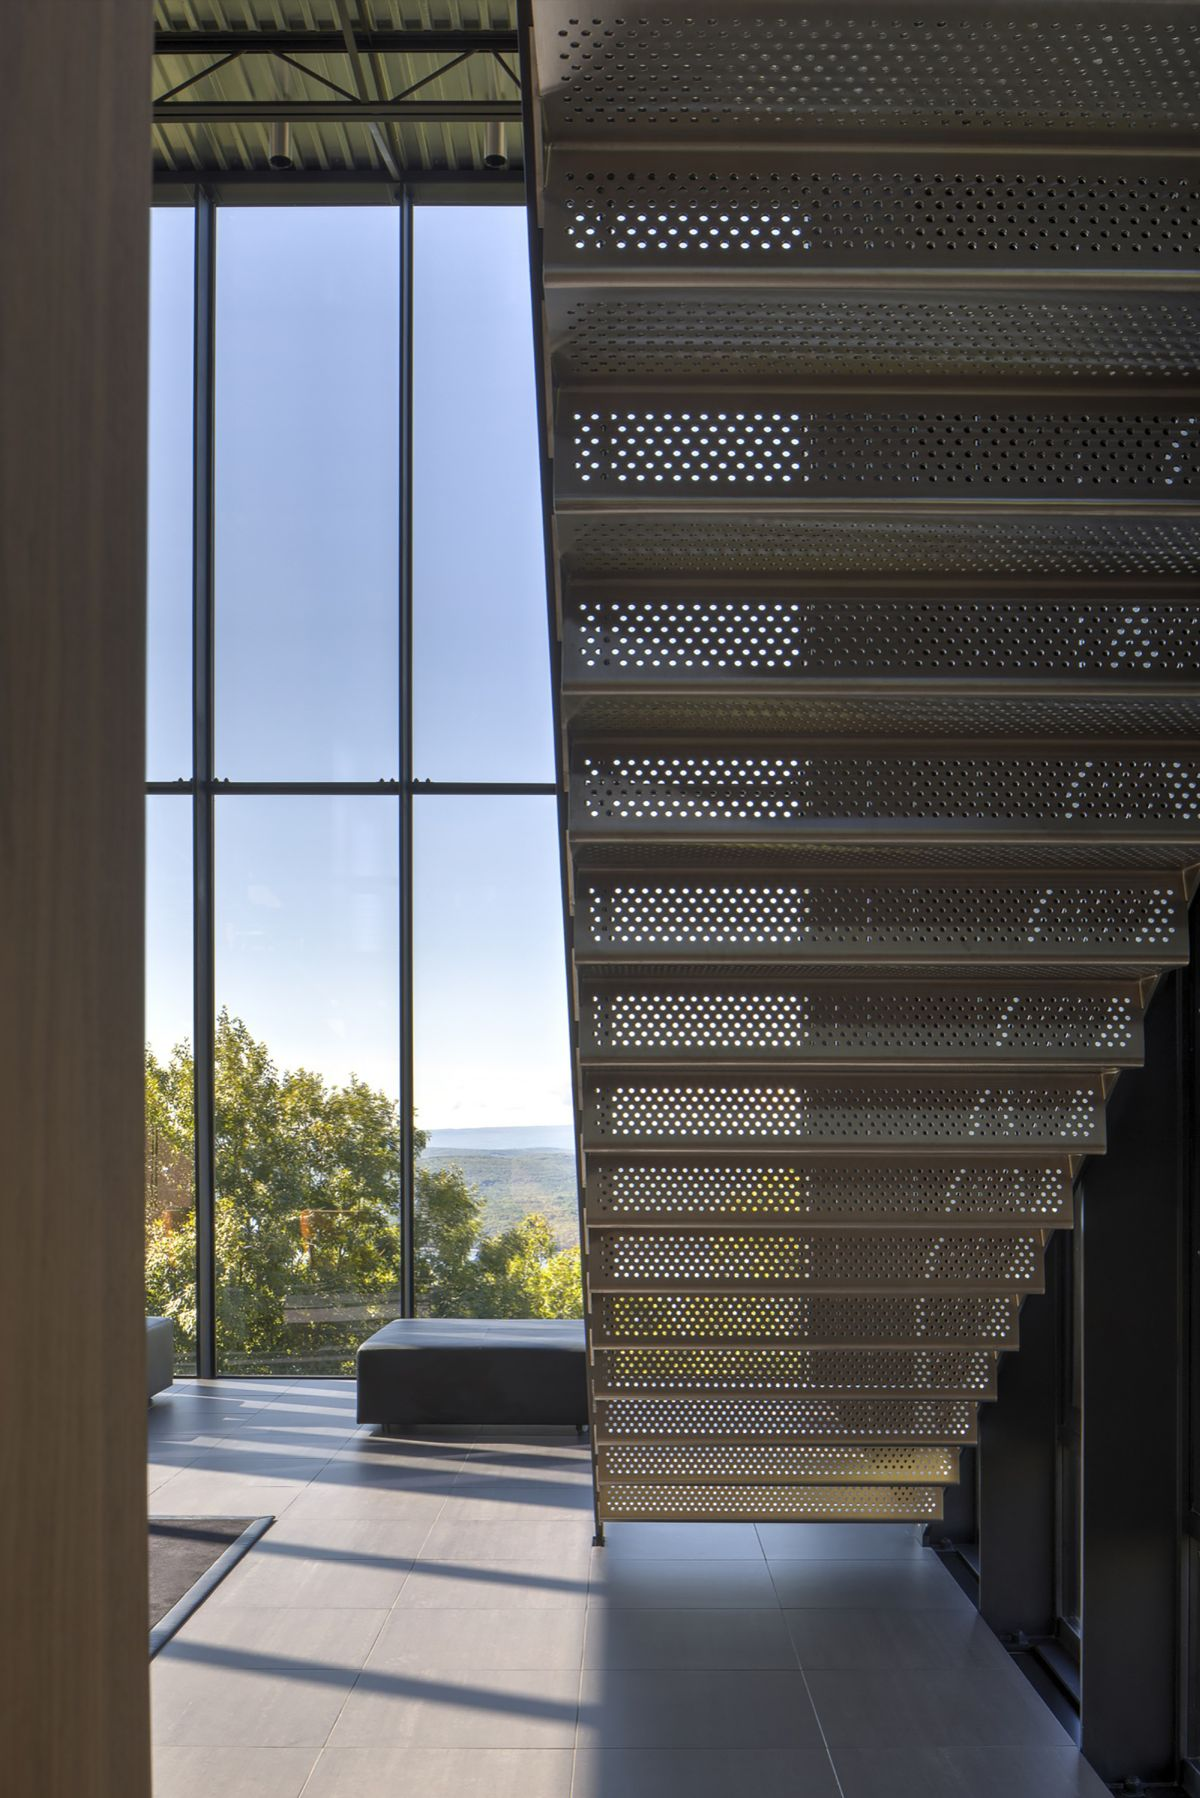 Shokan House with perforated steel stairs